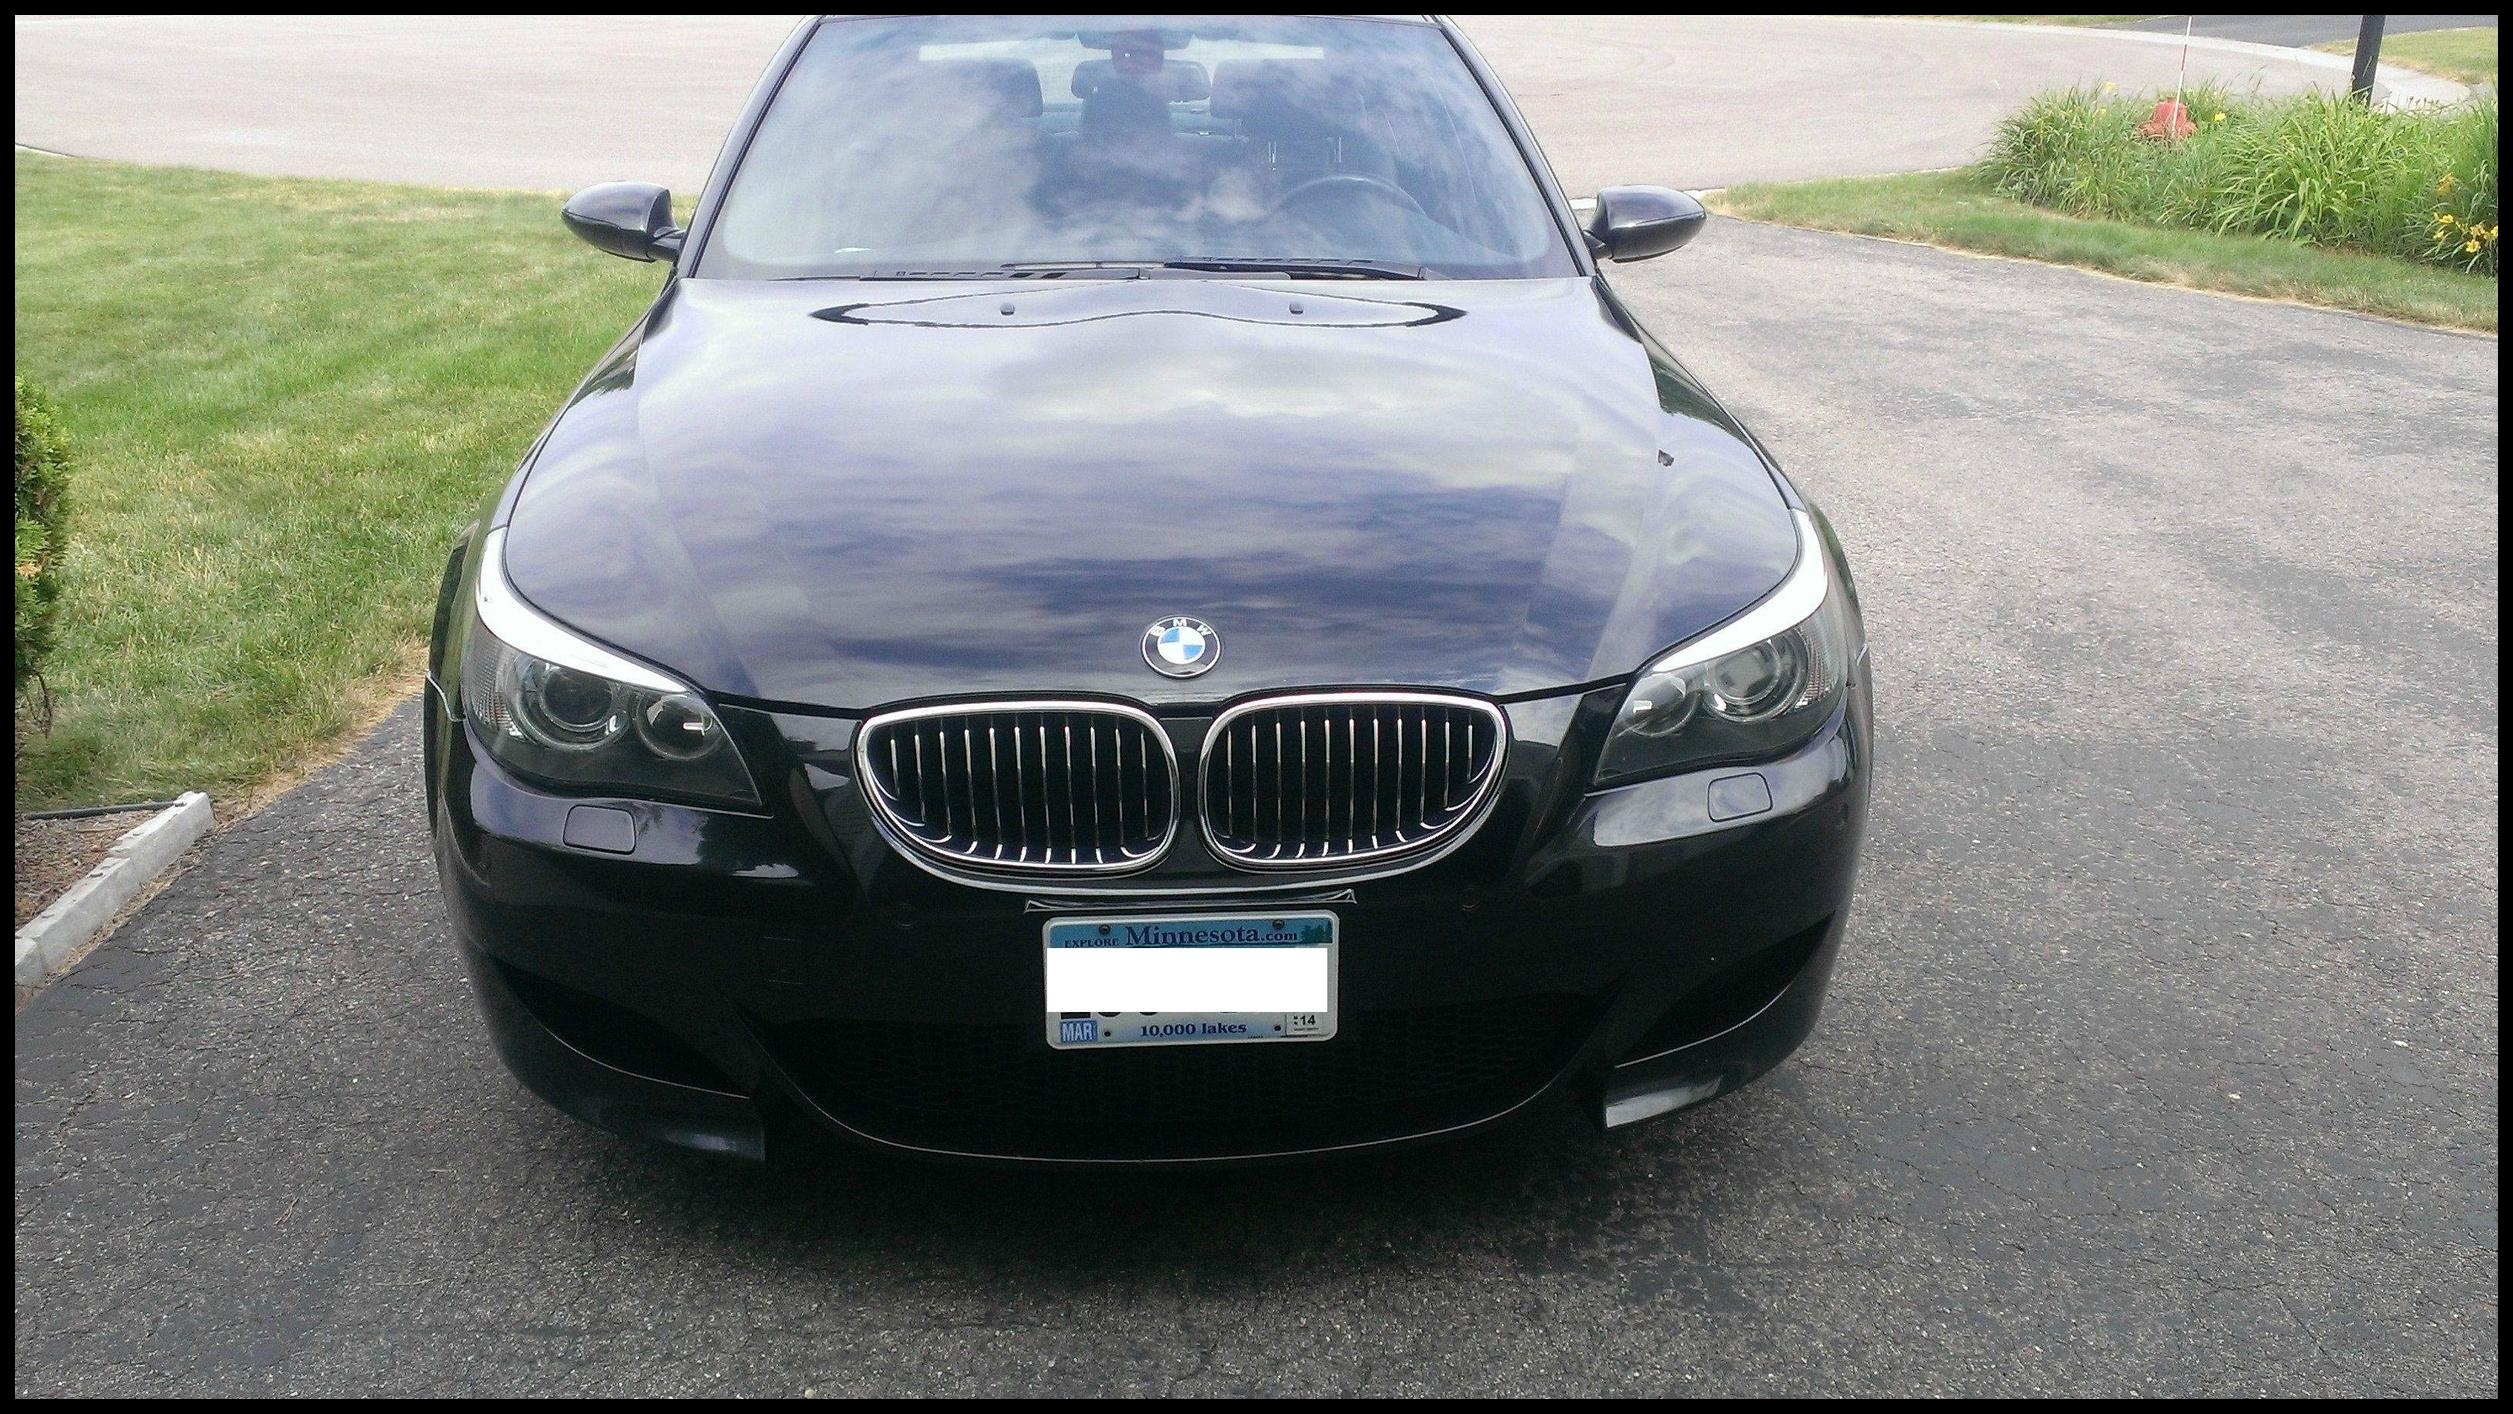 Here is my Minneapolis Craigslist ad 2006 Beautiful BMW M5 V 10 500HP